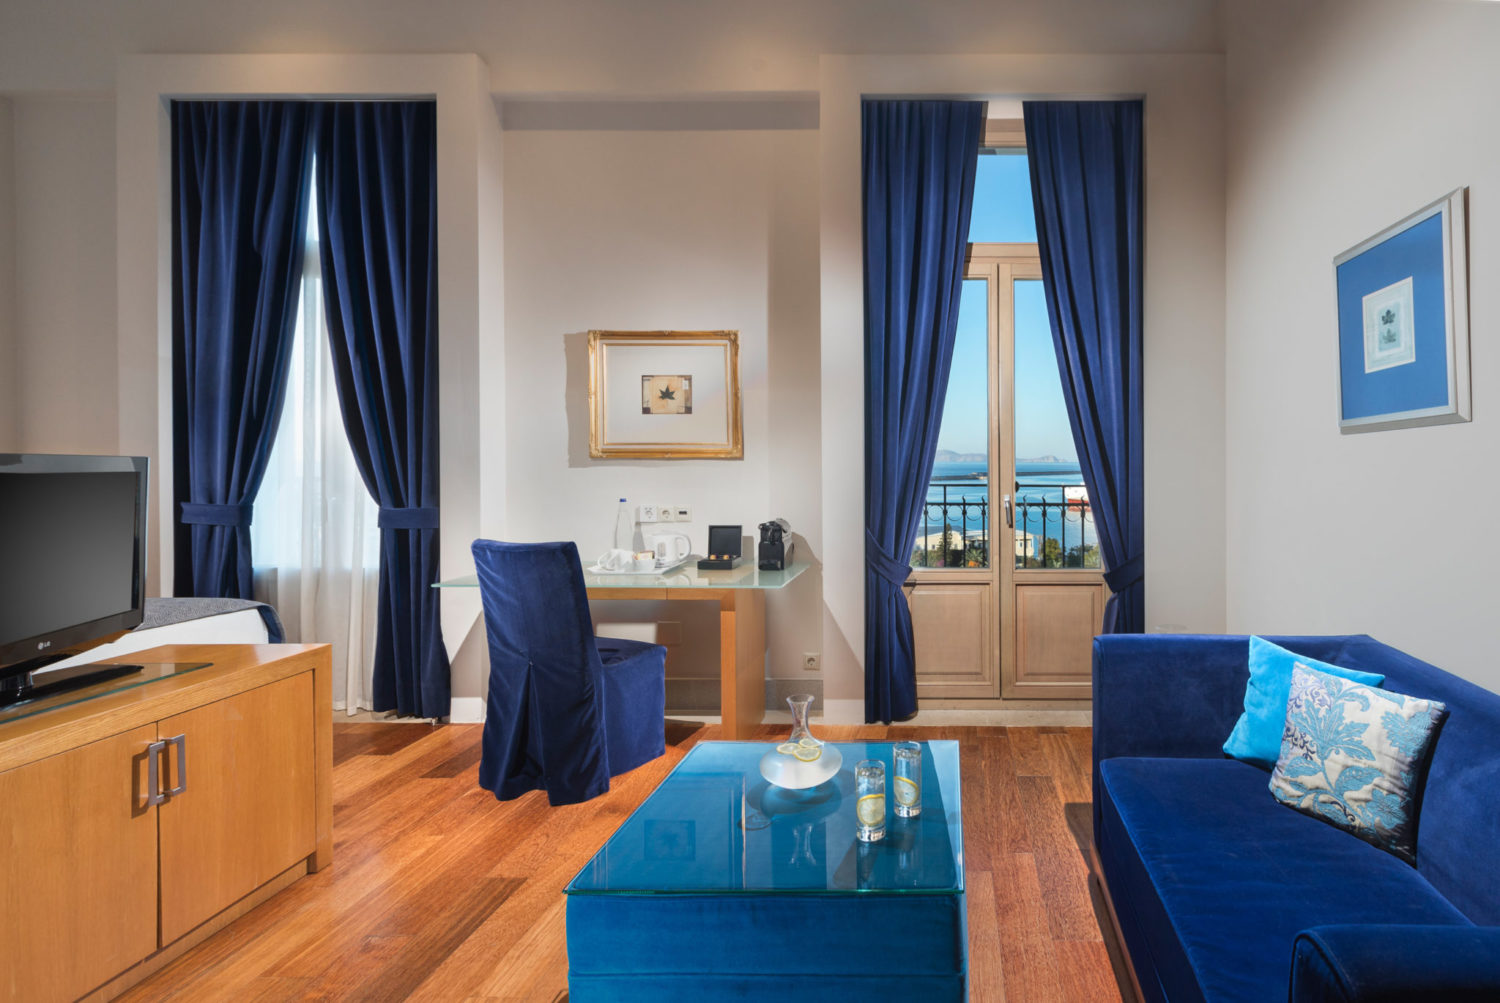 Junior Suite Sea View at Megaron Hotel in Heraklion Crete